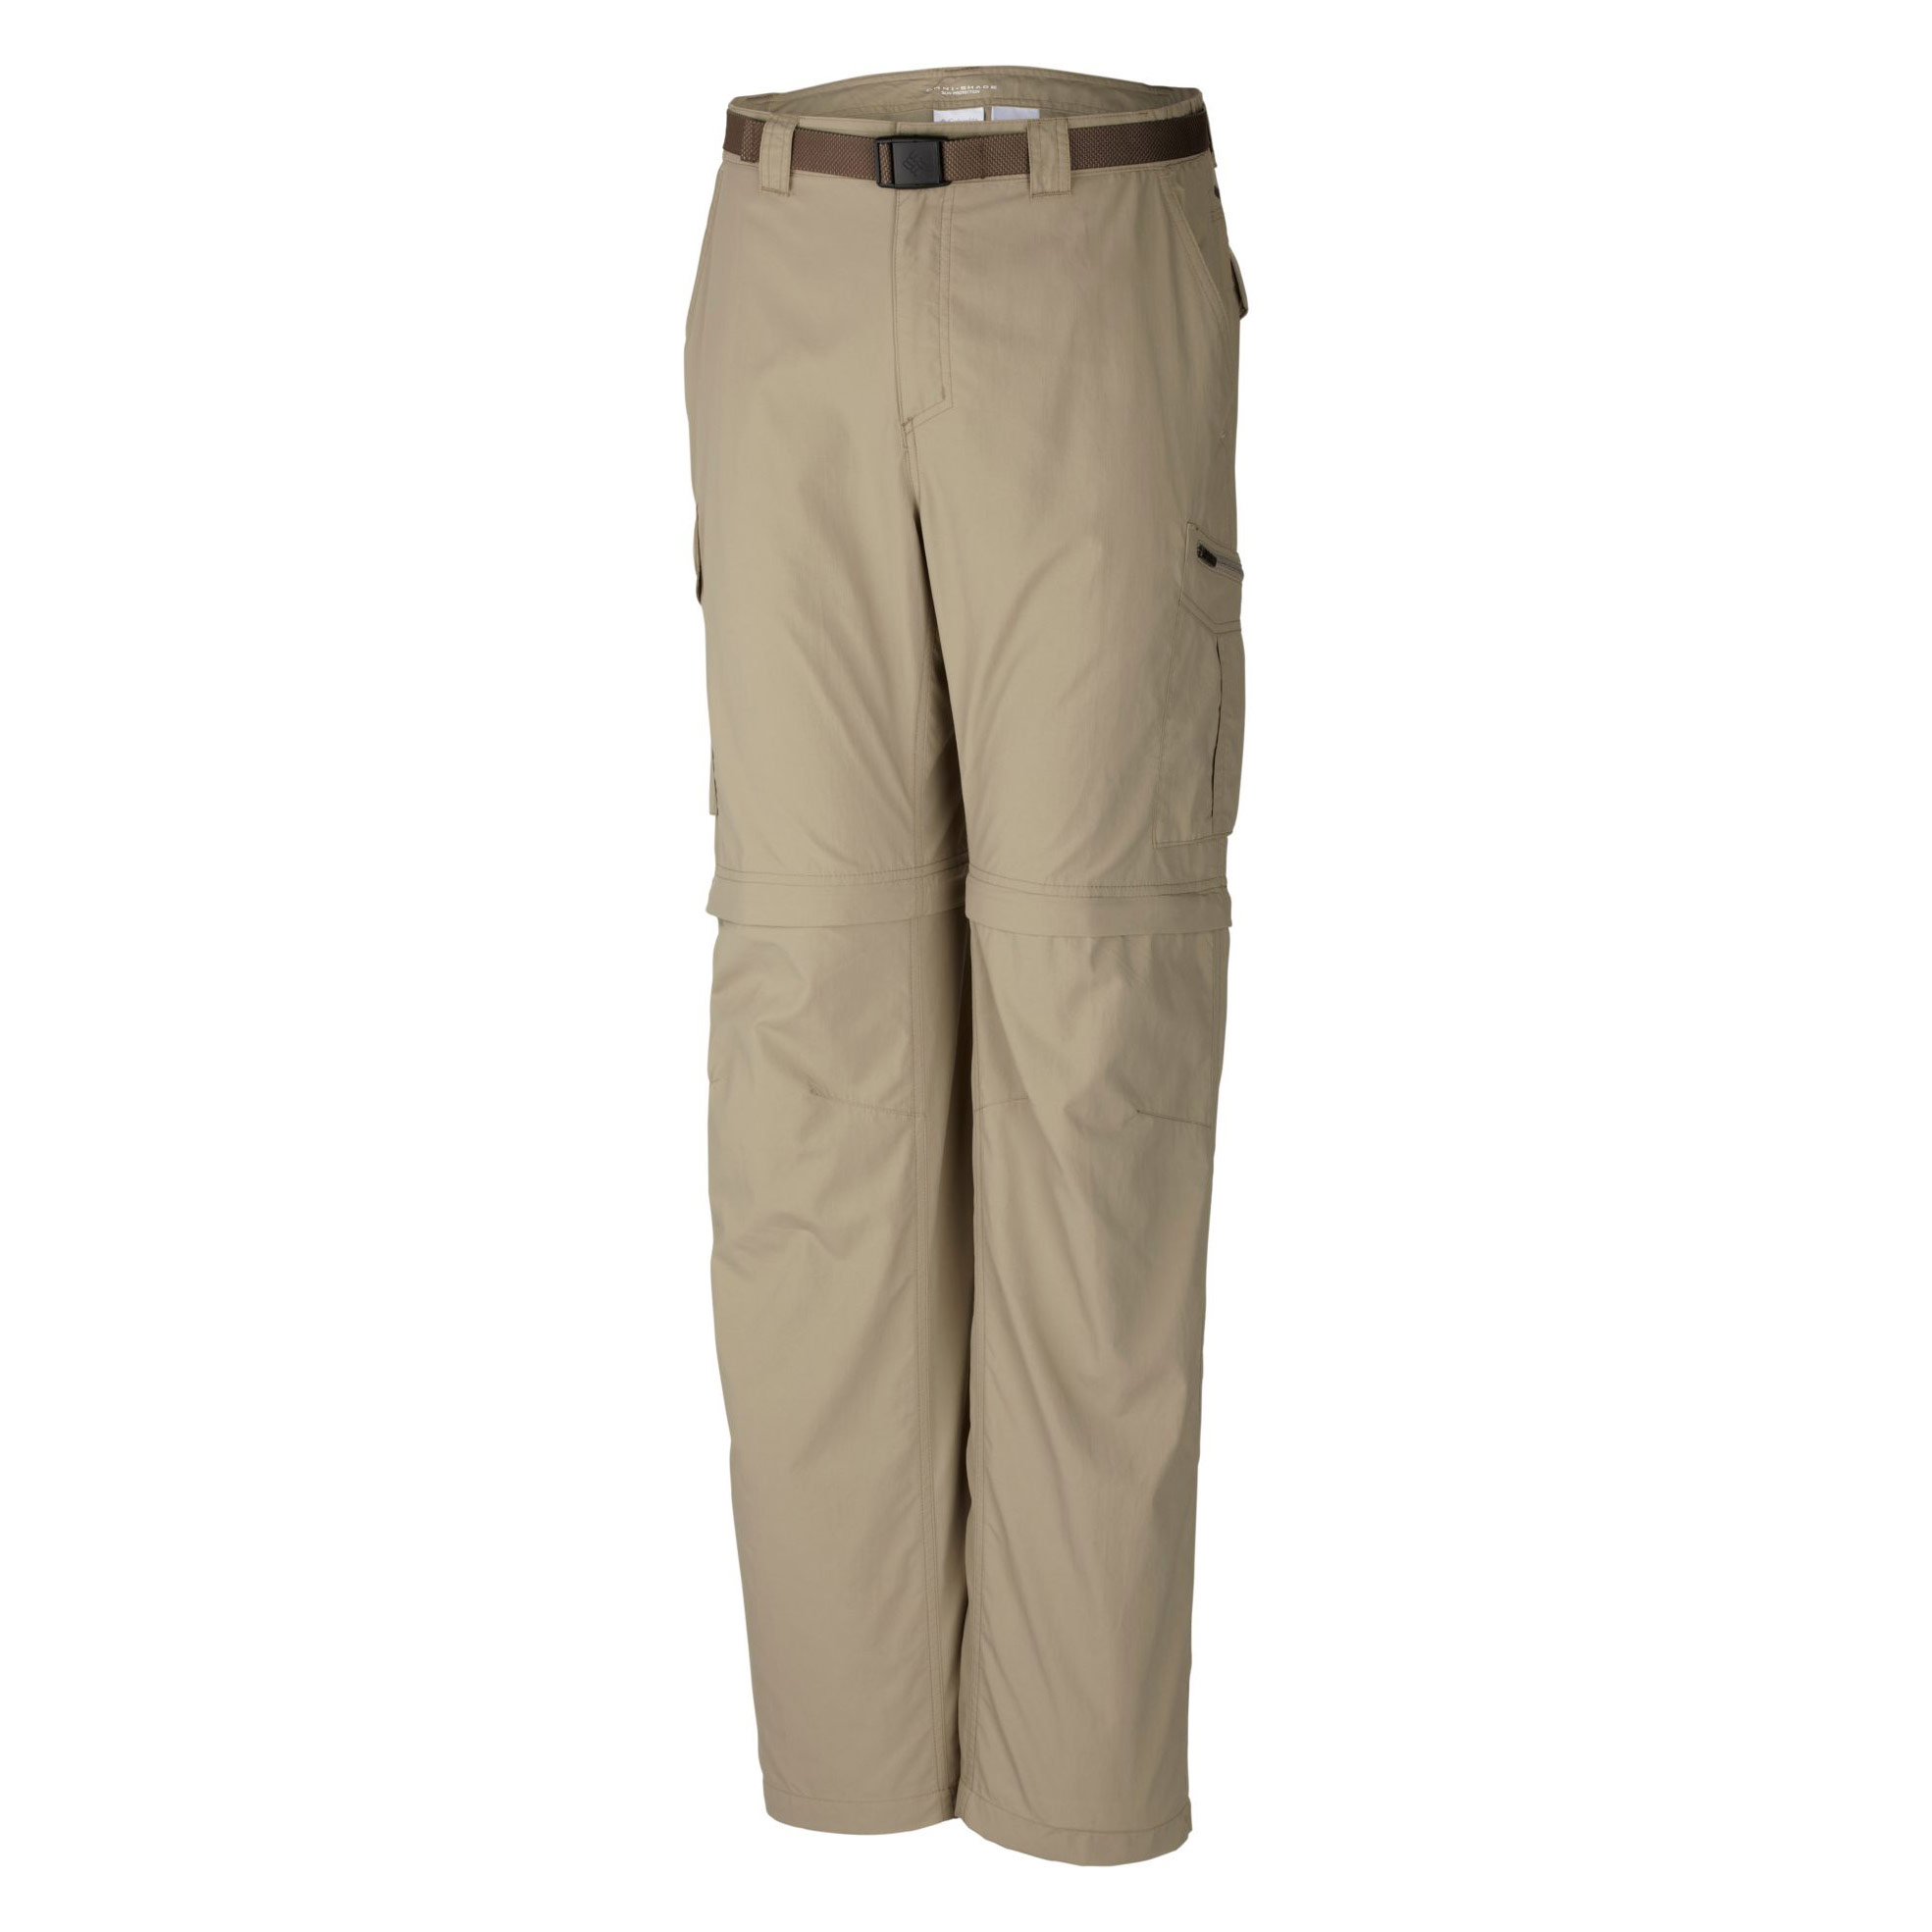 Silver Ridge Convertible Pant Plus - Men's